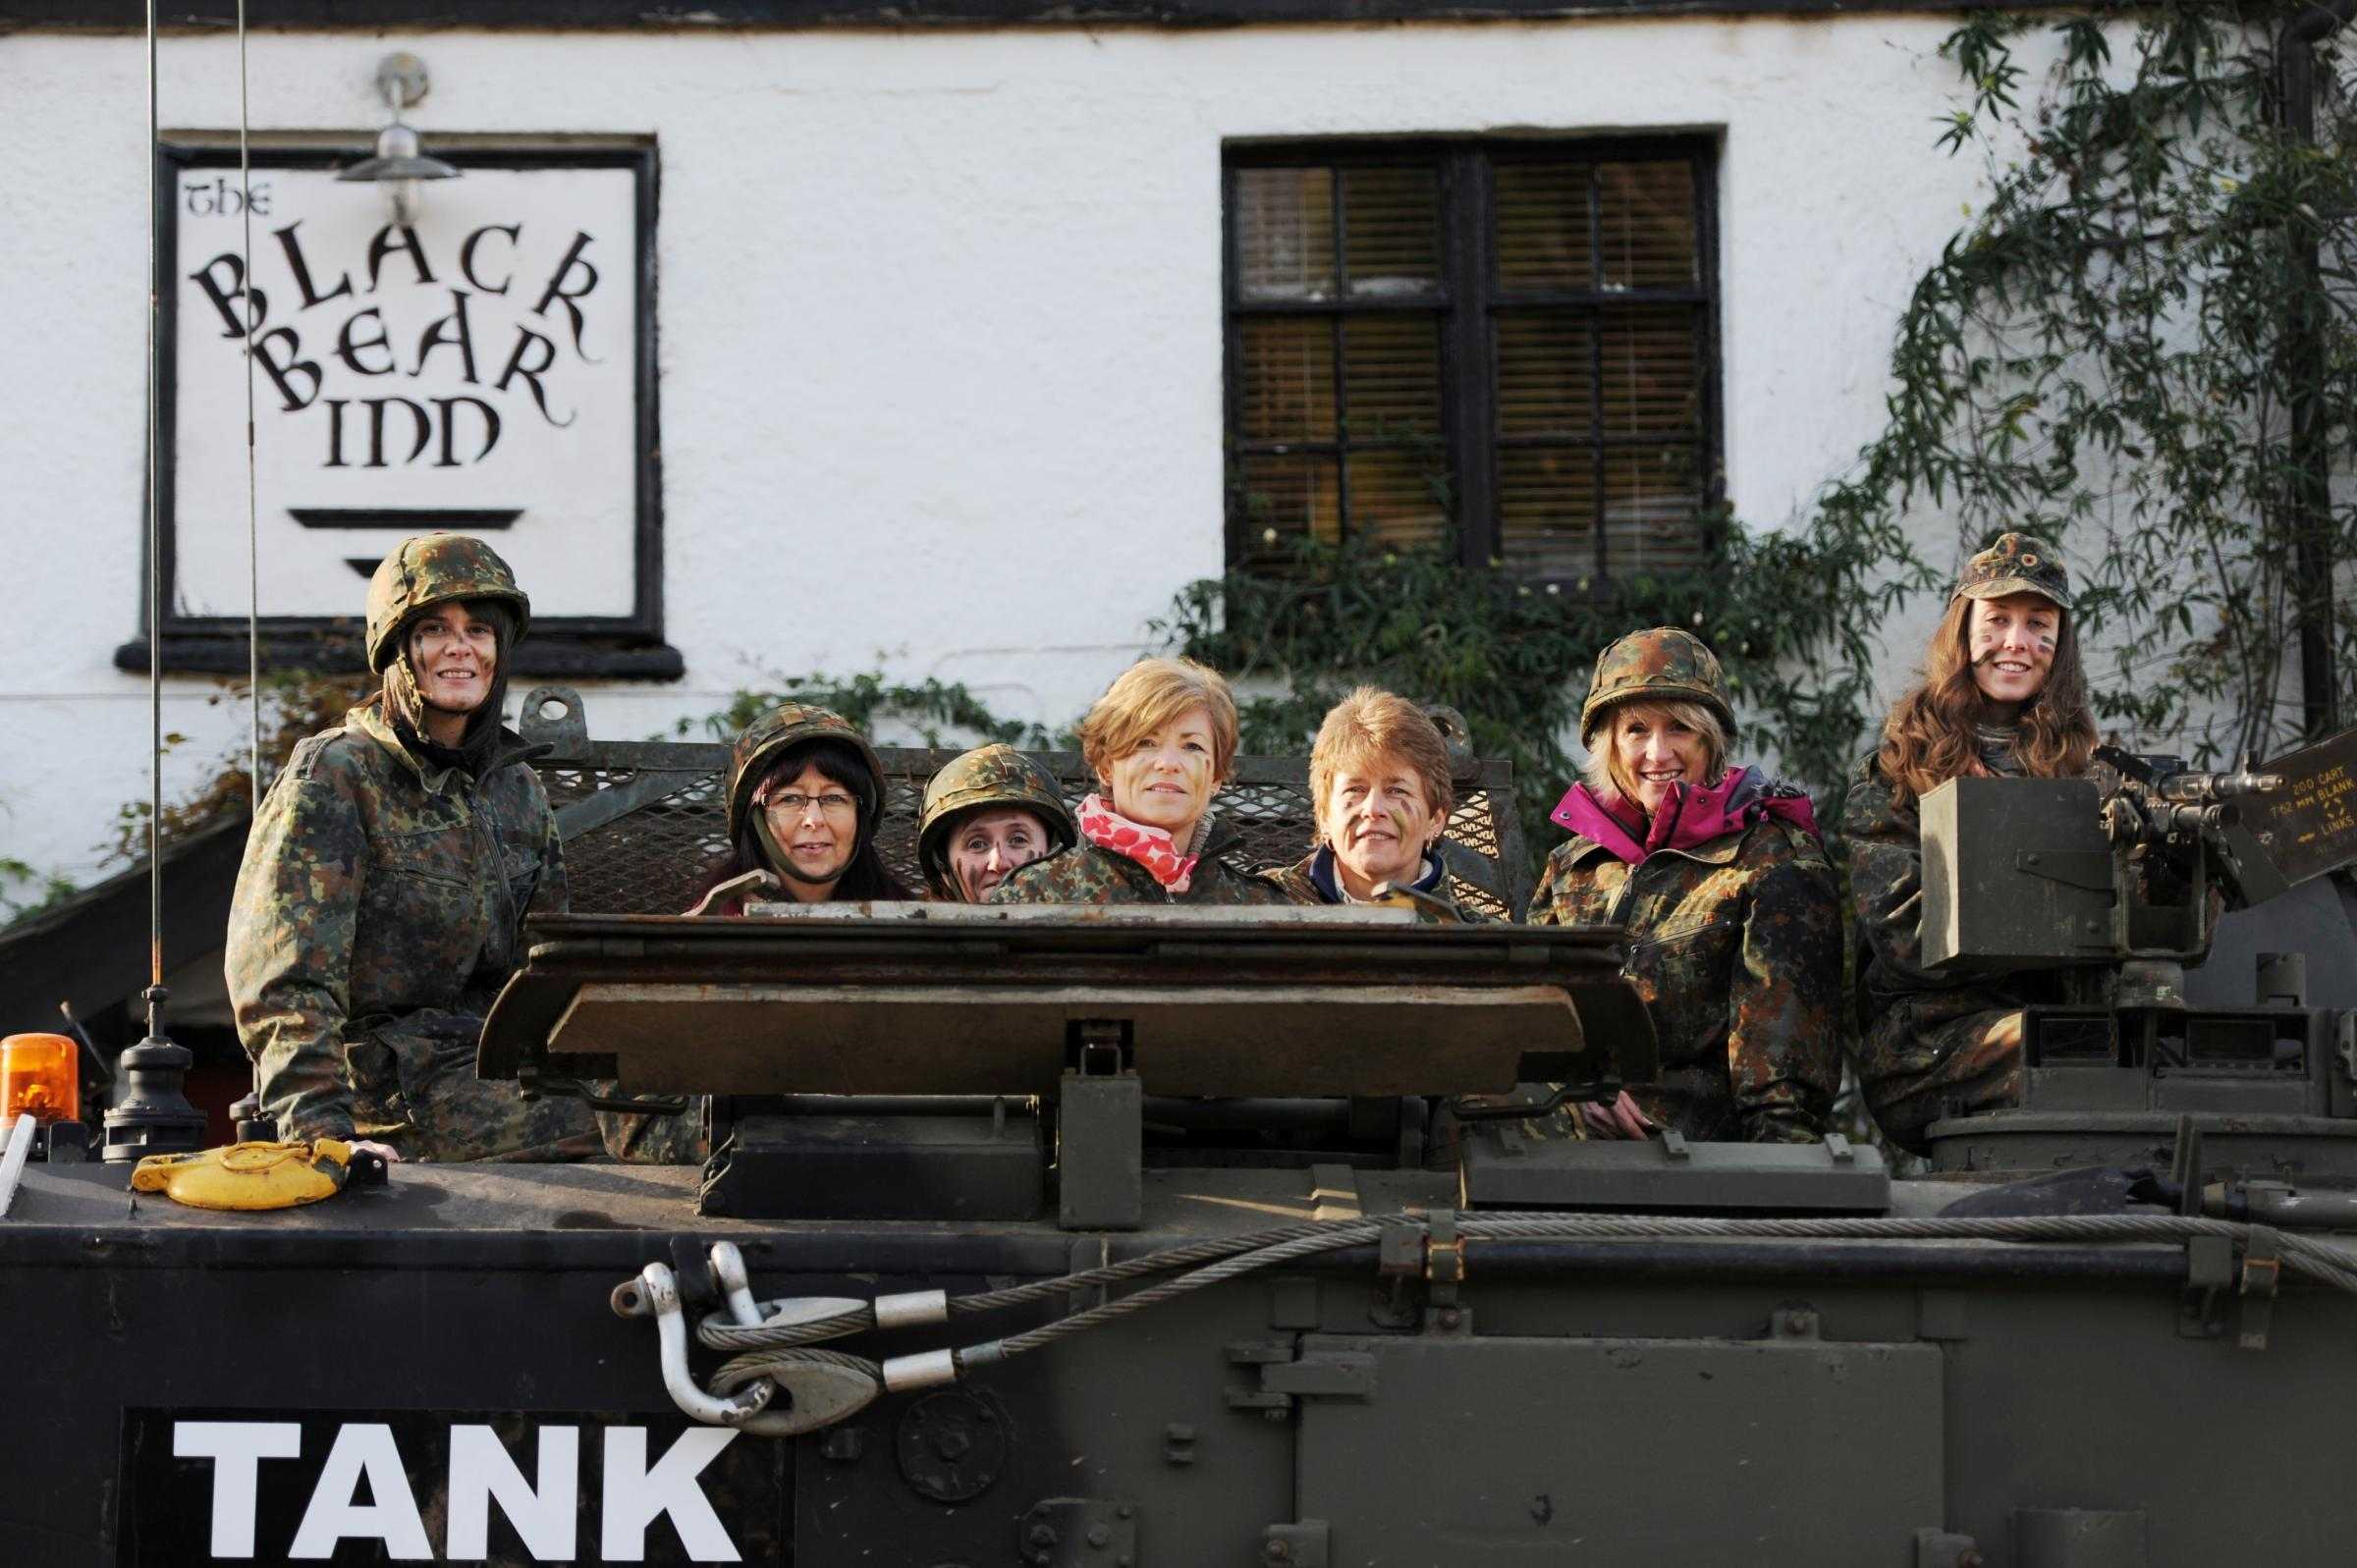 'Tank' takes to the road near Usk